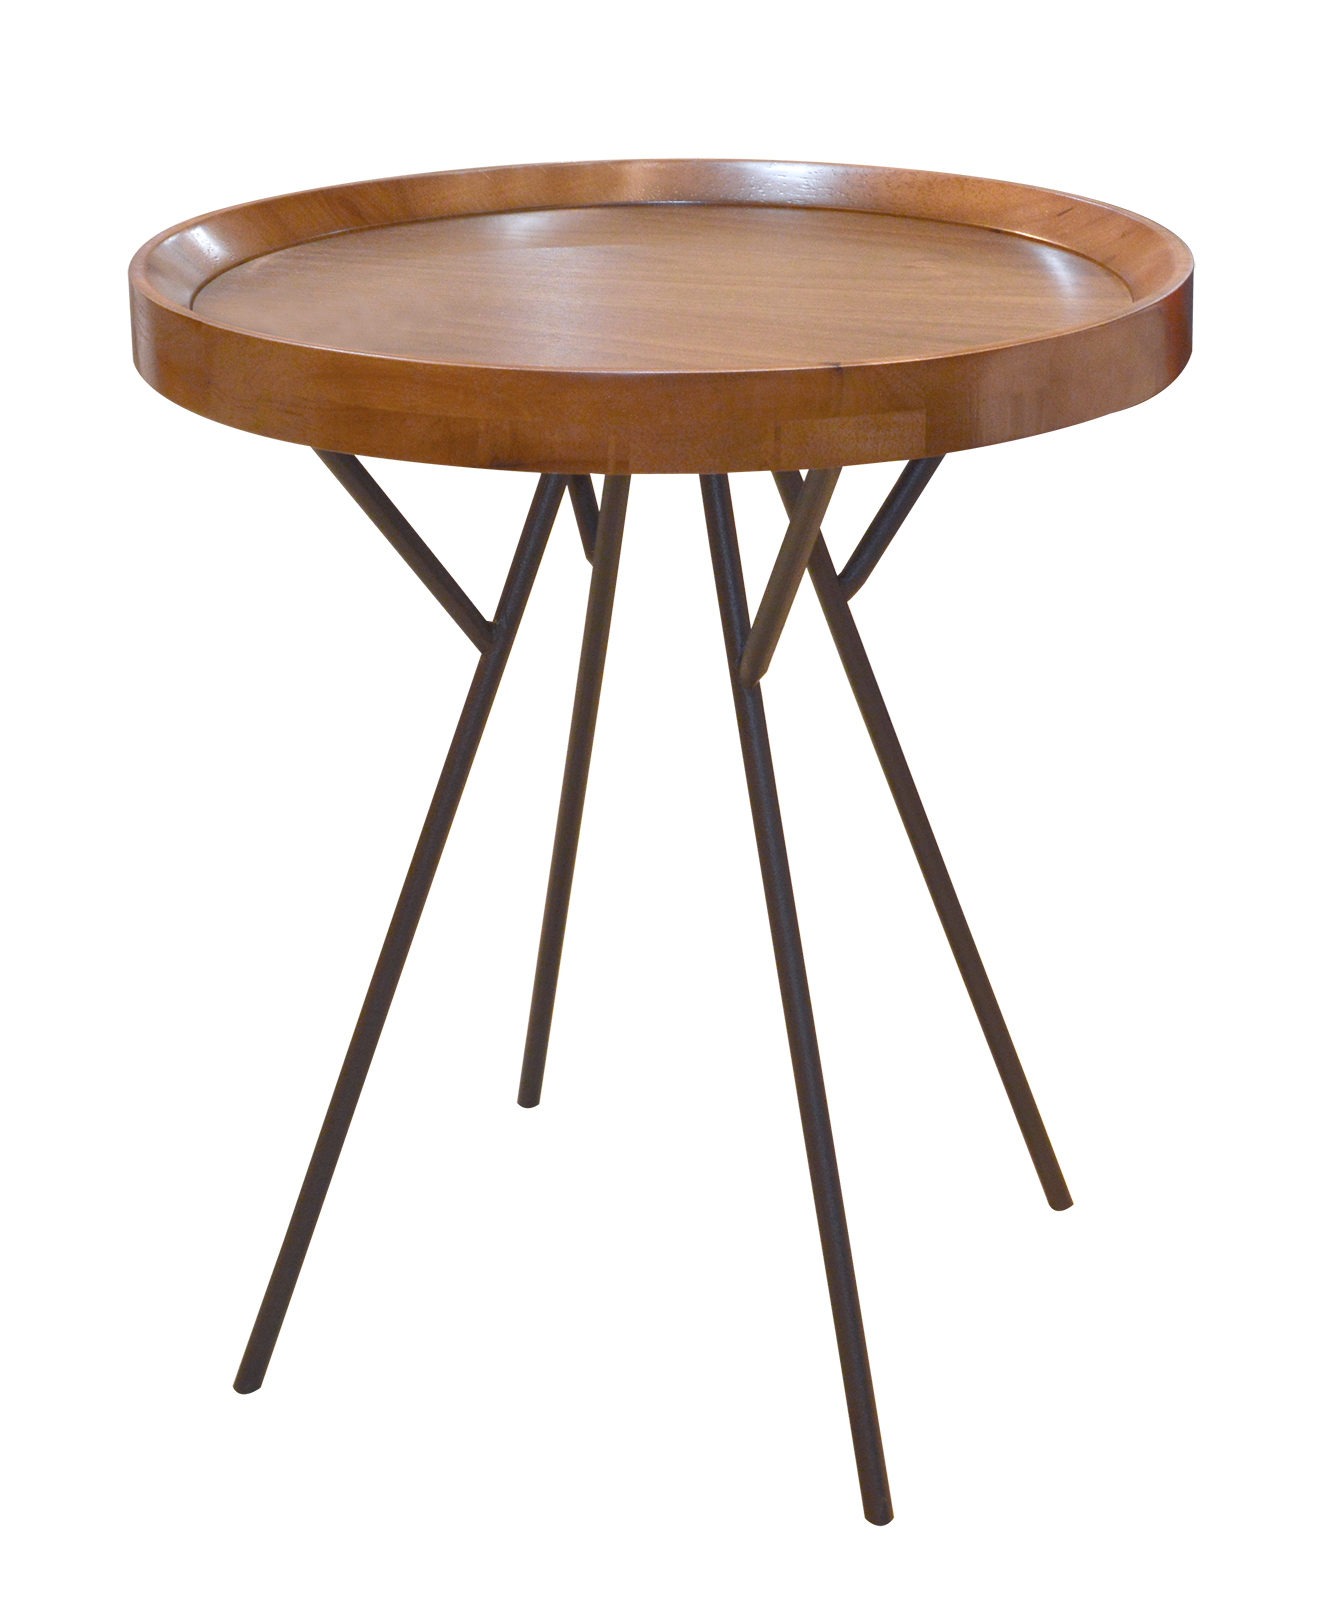 end table 926 B ET.jpg